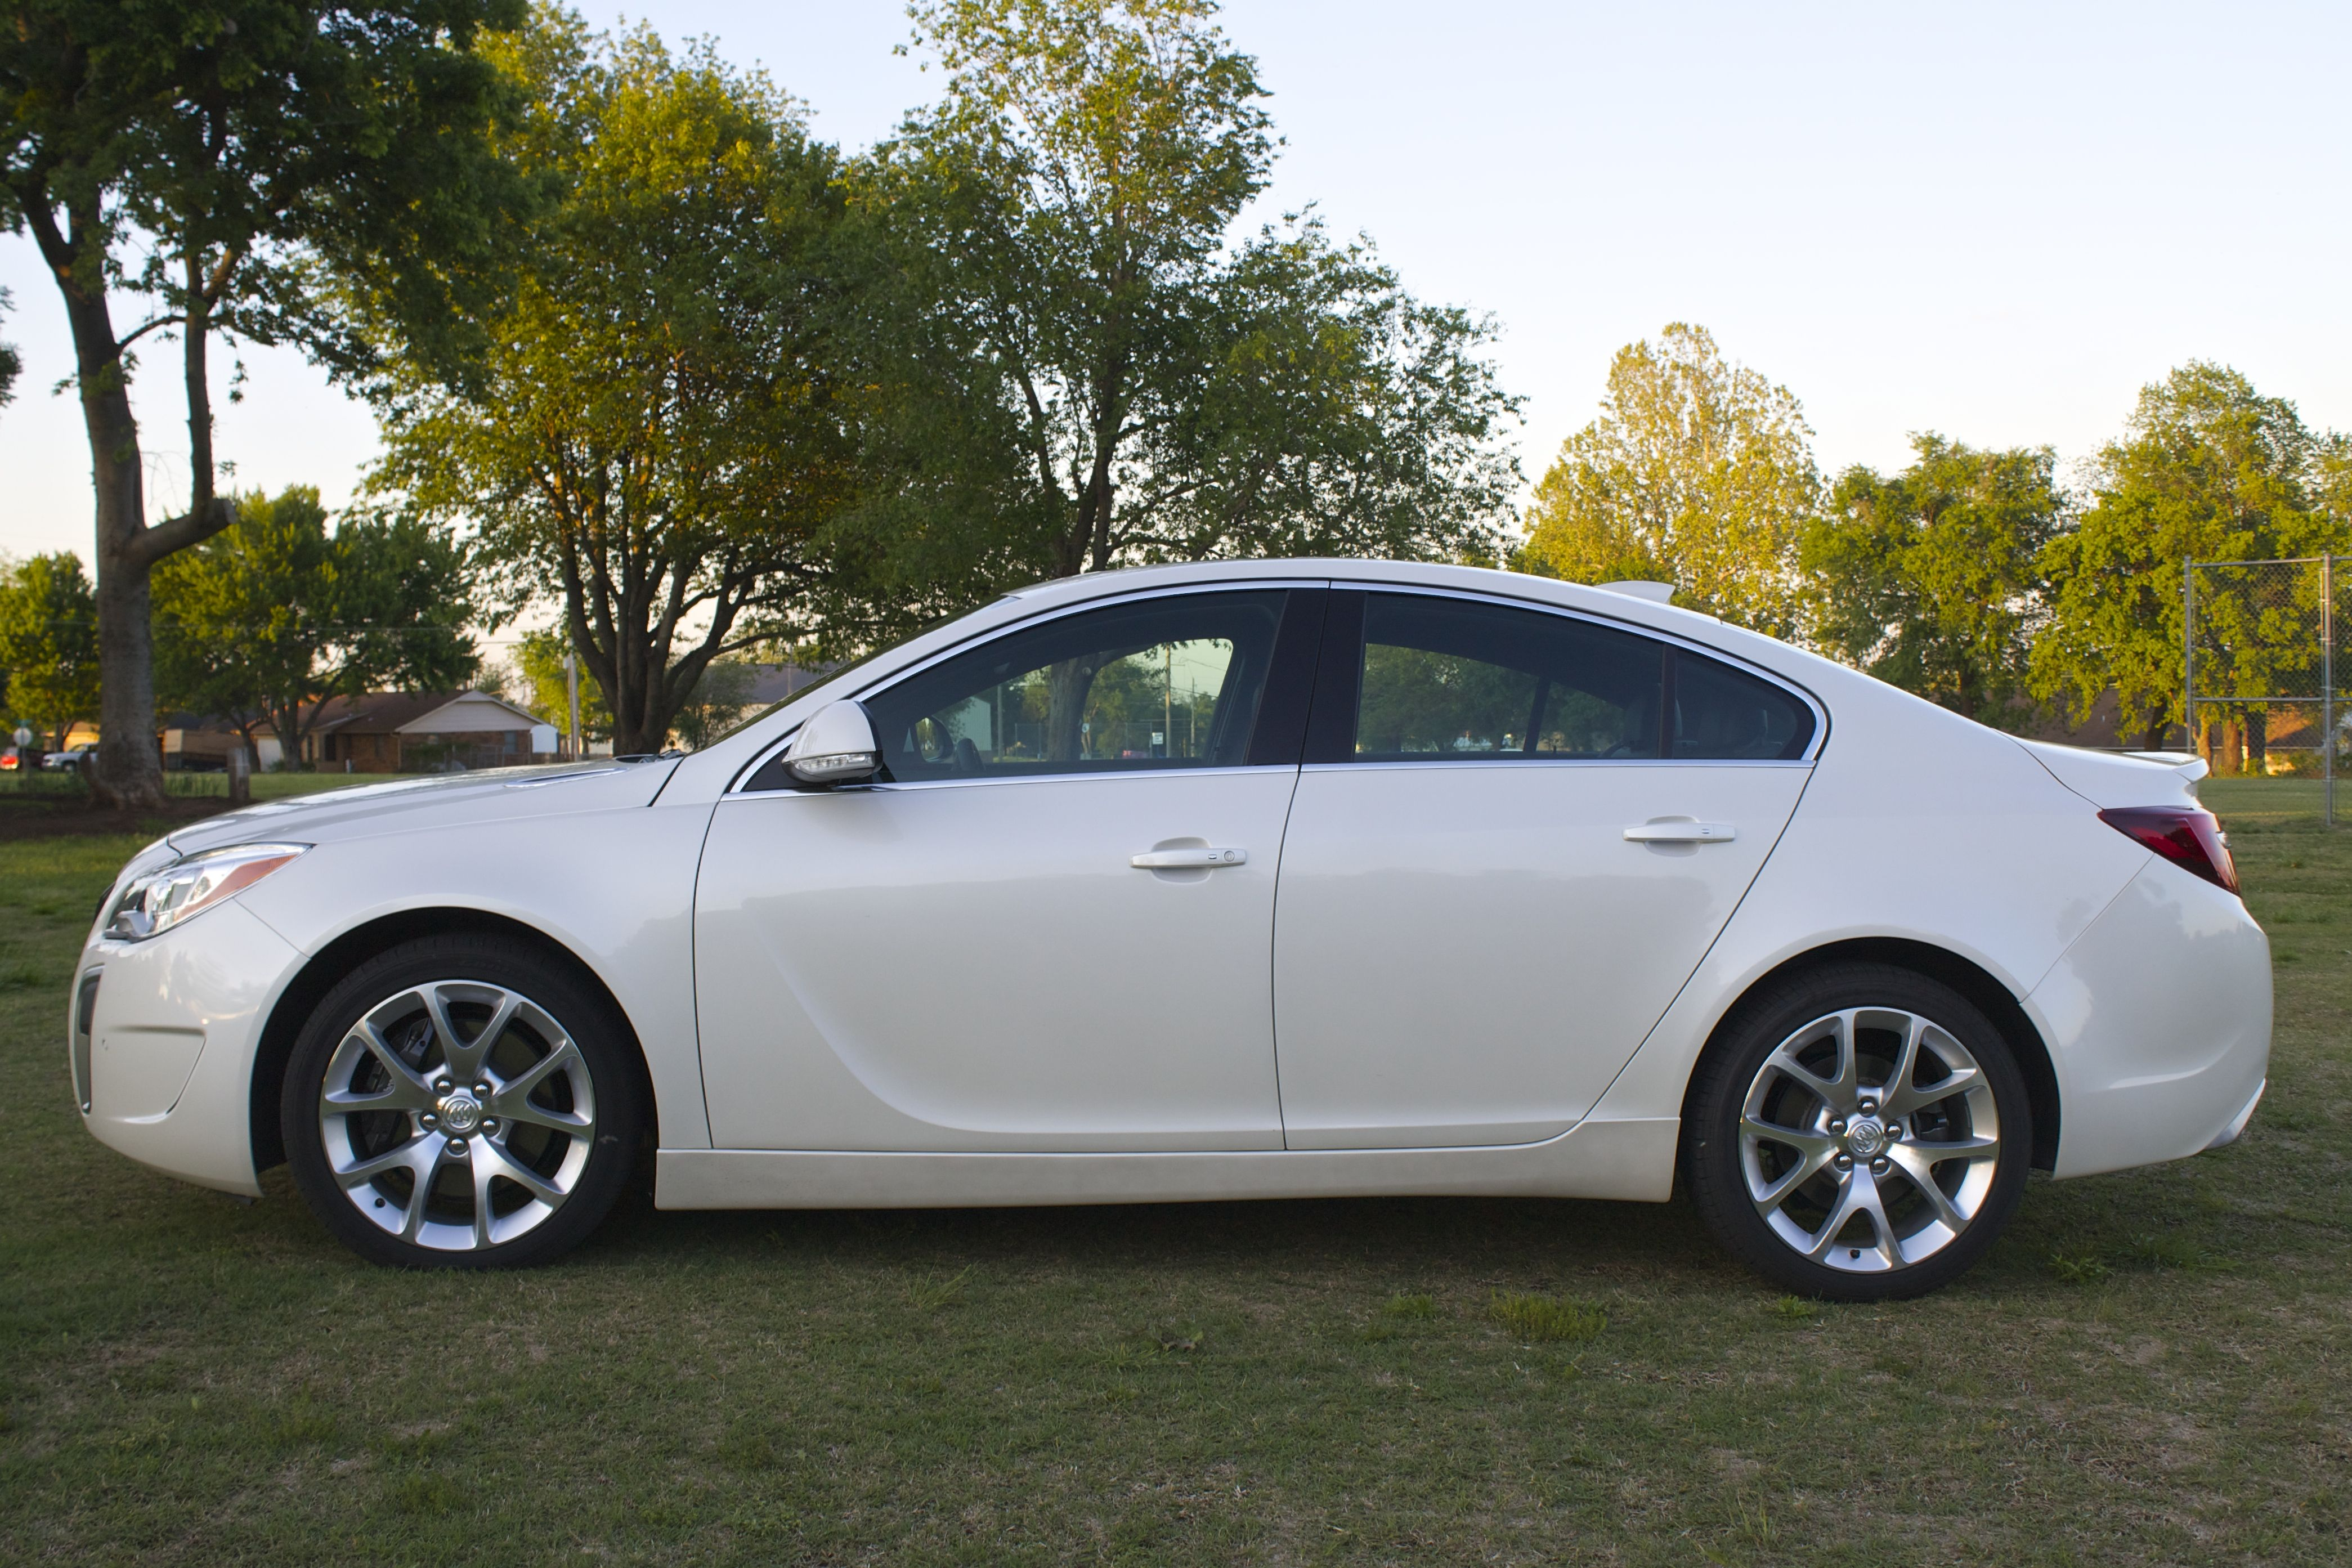 Why You Should Consider The 2015 Buick Regal Gs 2015 Buick Buick Regal Gs Buick Regal